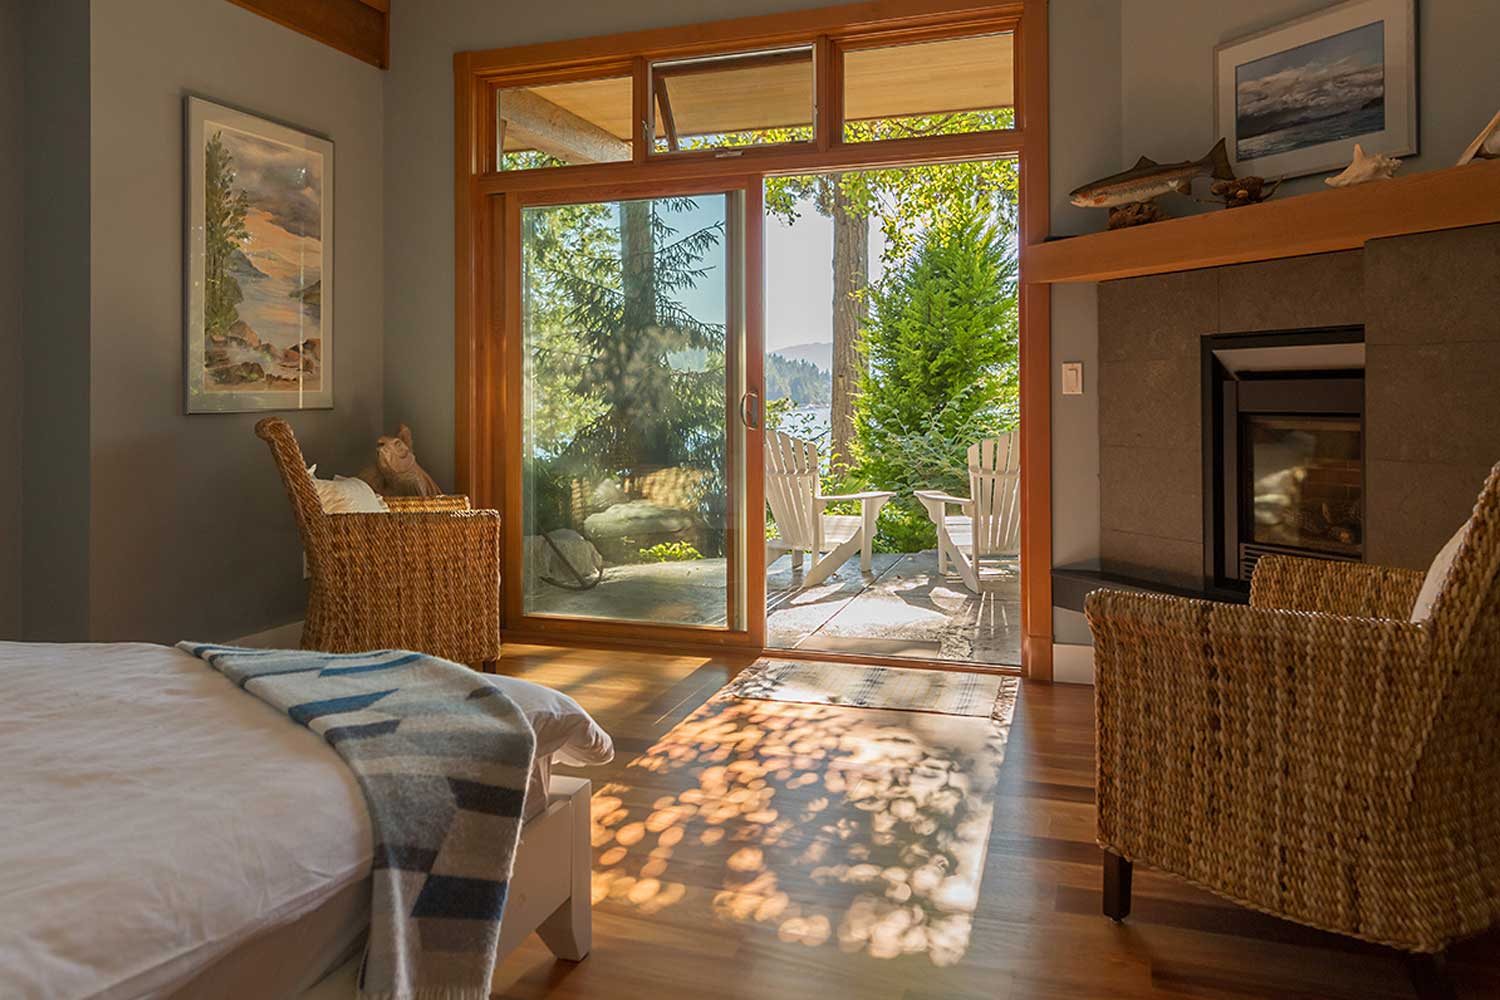 Sunlight shines into one of the bedrooms of this luxury house rental at John Henry's Marina and Resort.